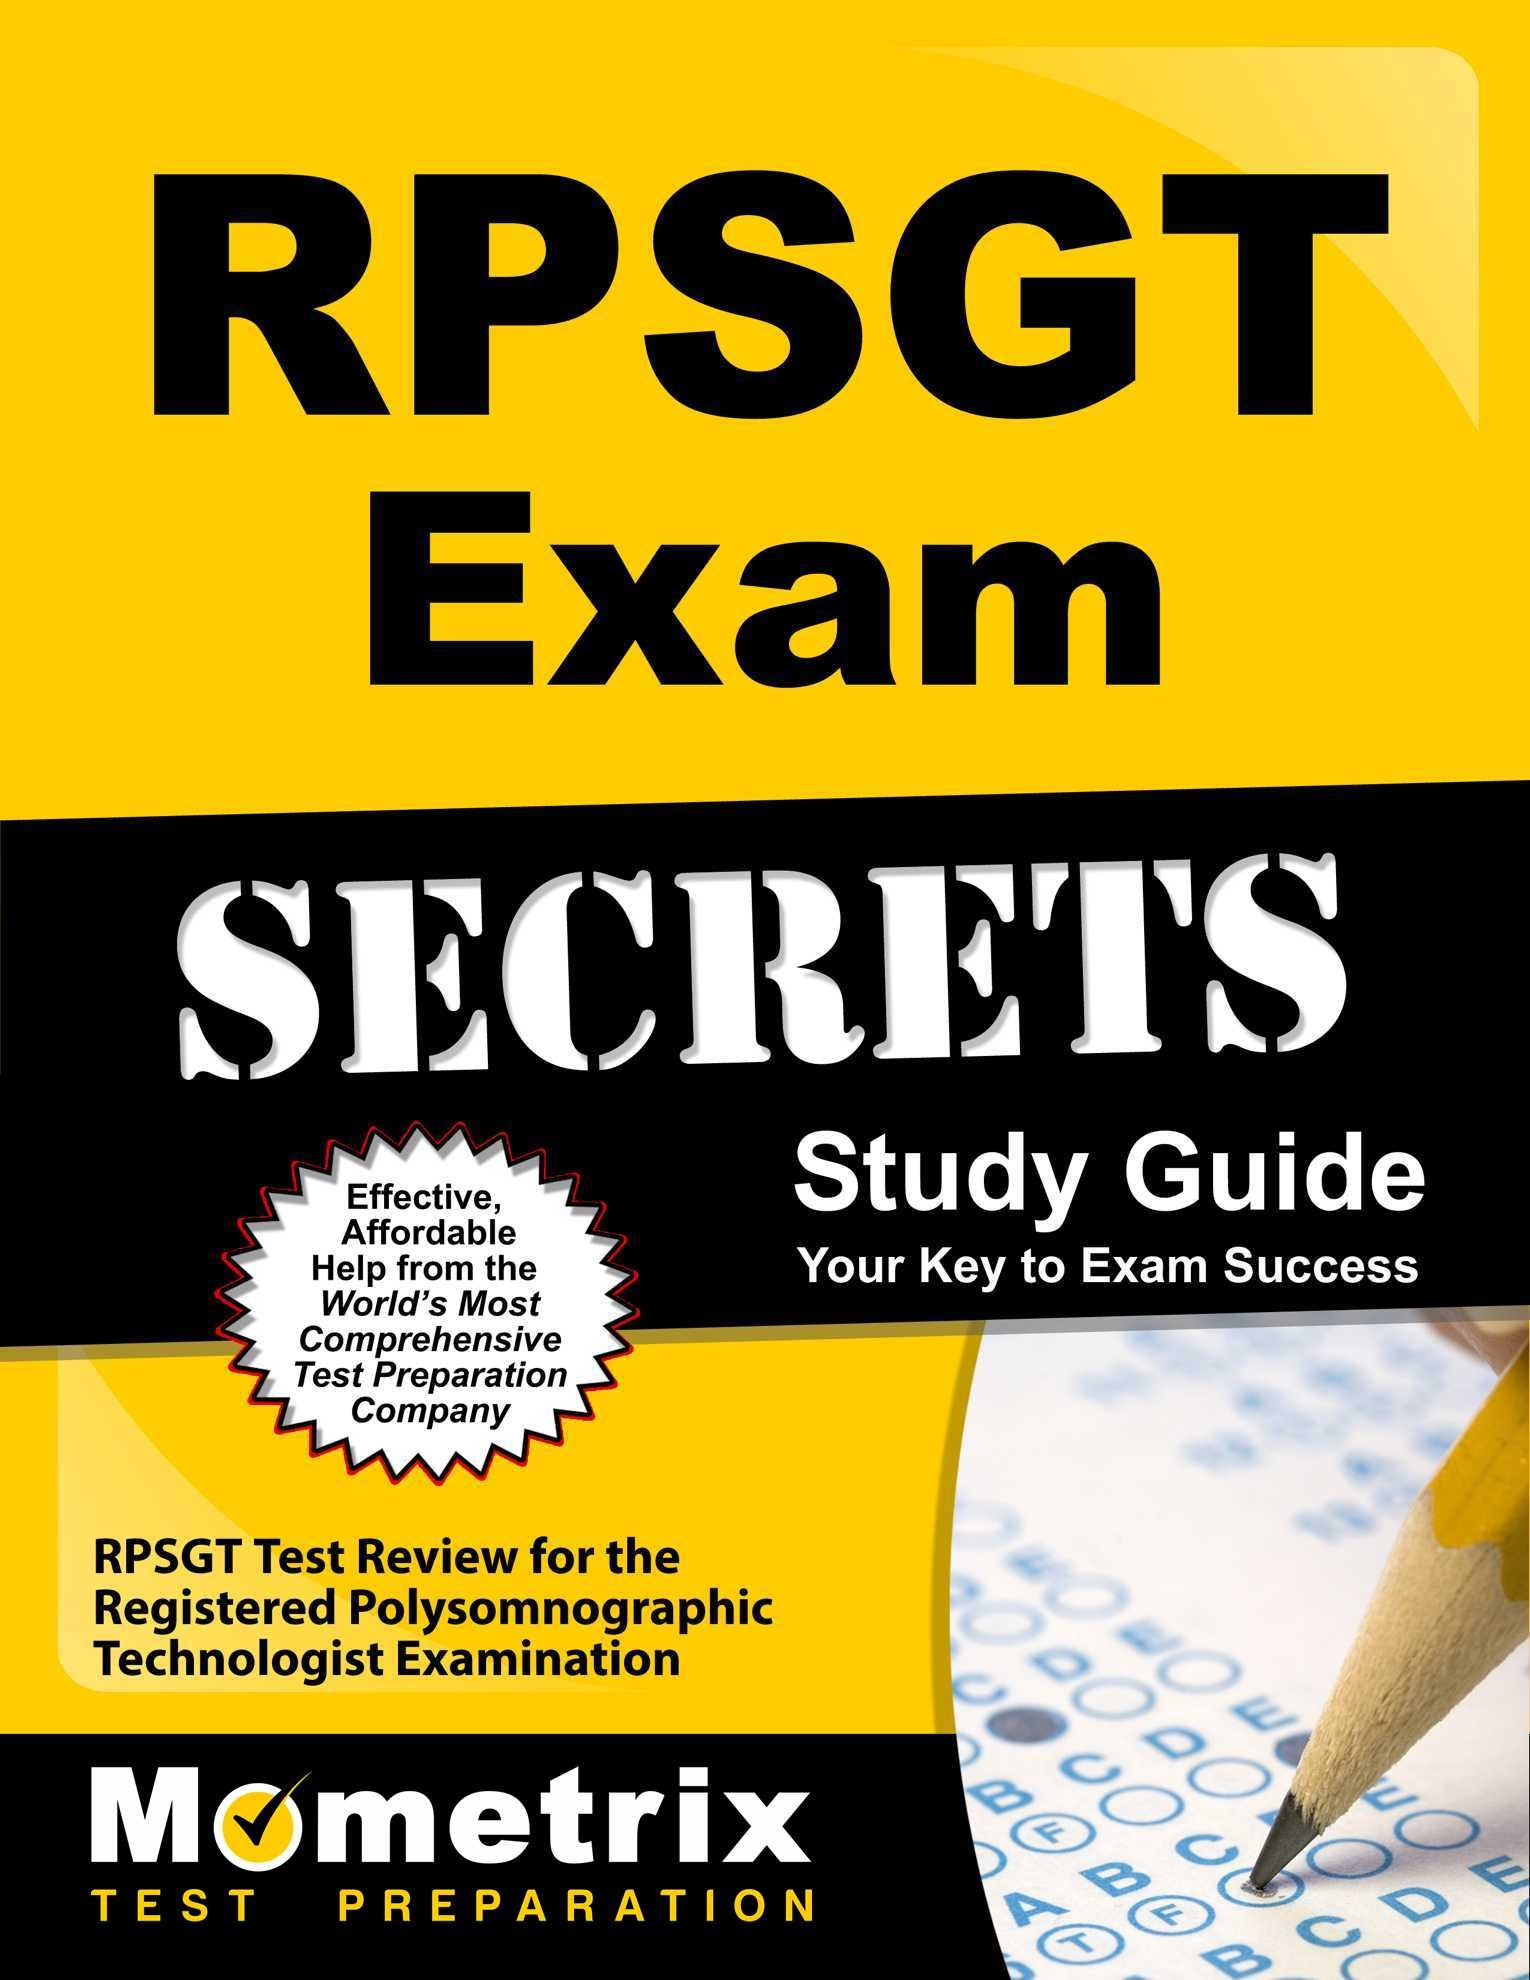 RPSGT Exam Secrets Study Guide: RPSGT Test Review for the Registered  Polysomnographic Technologist Examination: RPSGT Exam Secrets T:  9781610728331: Books ...